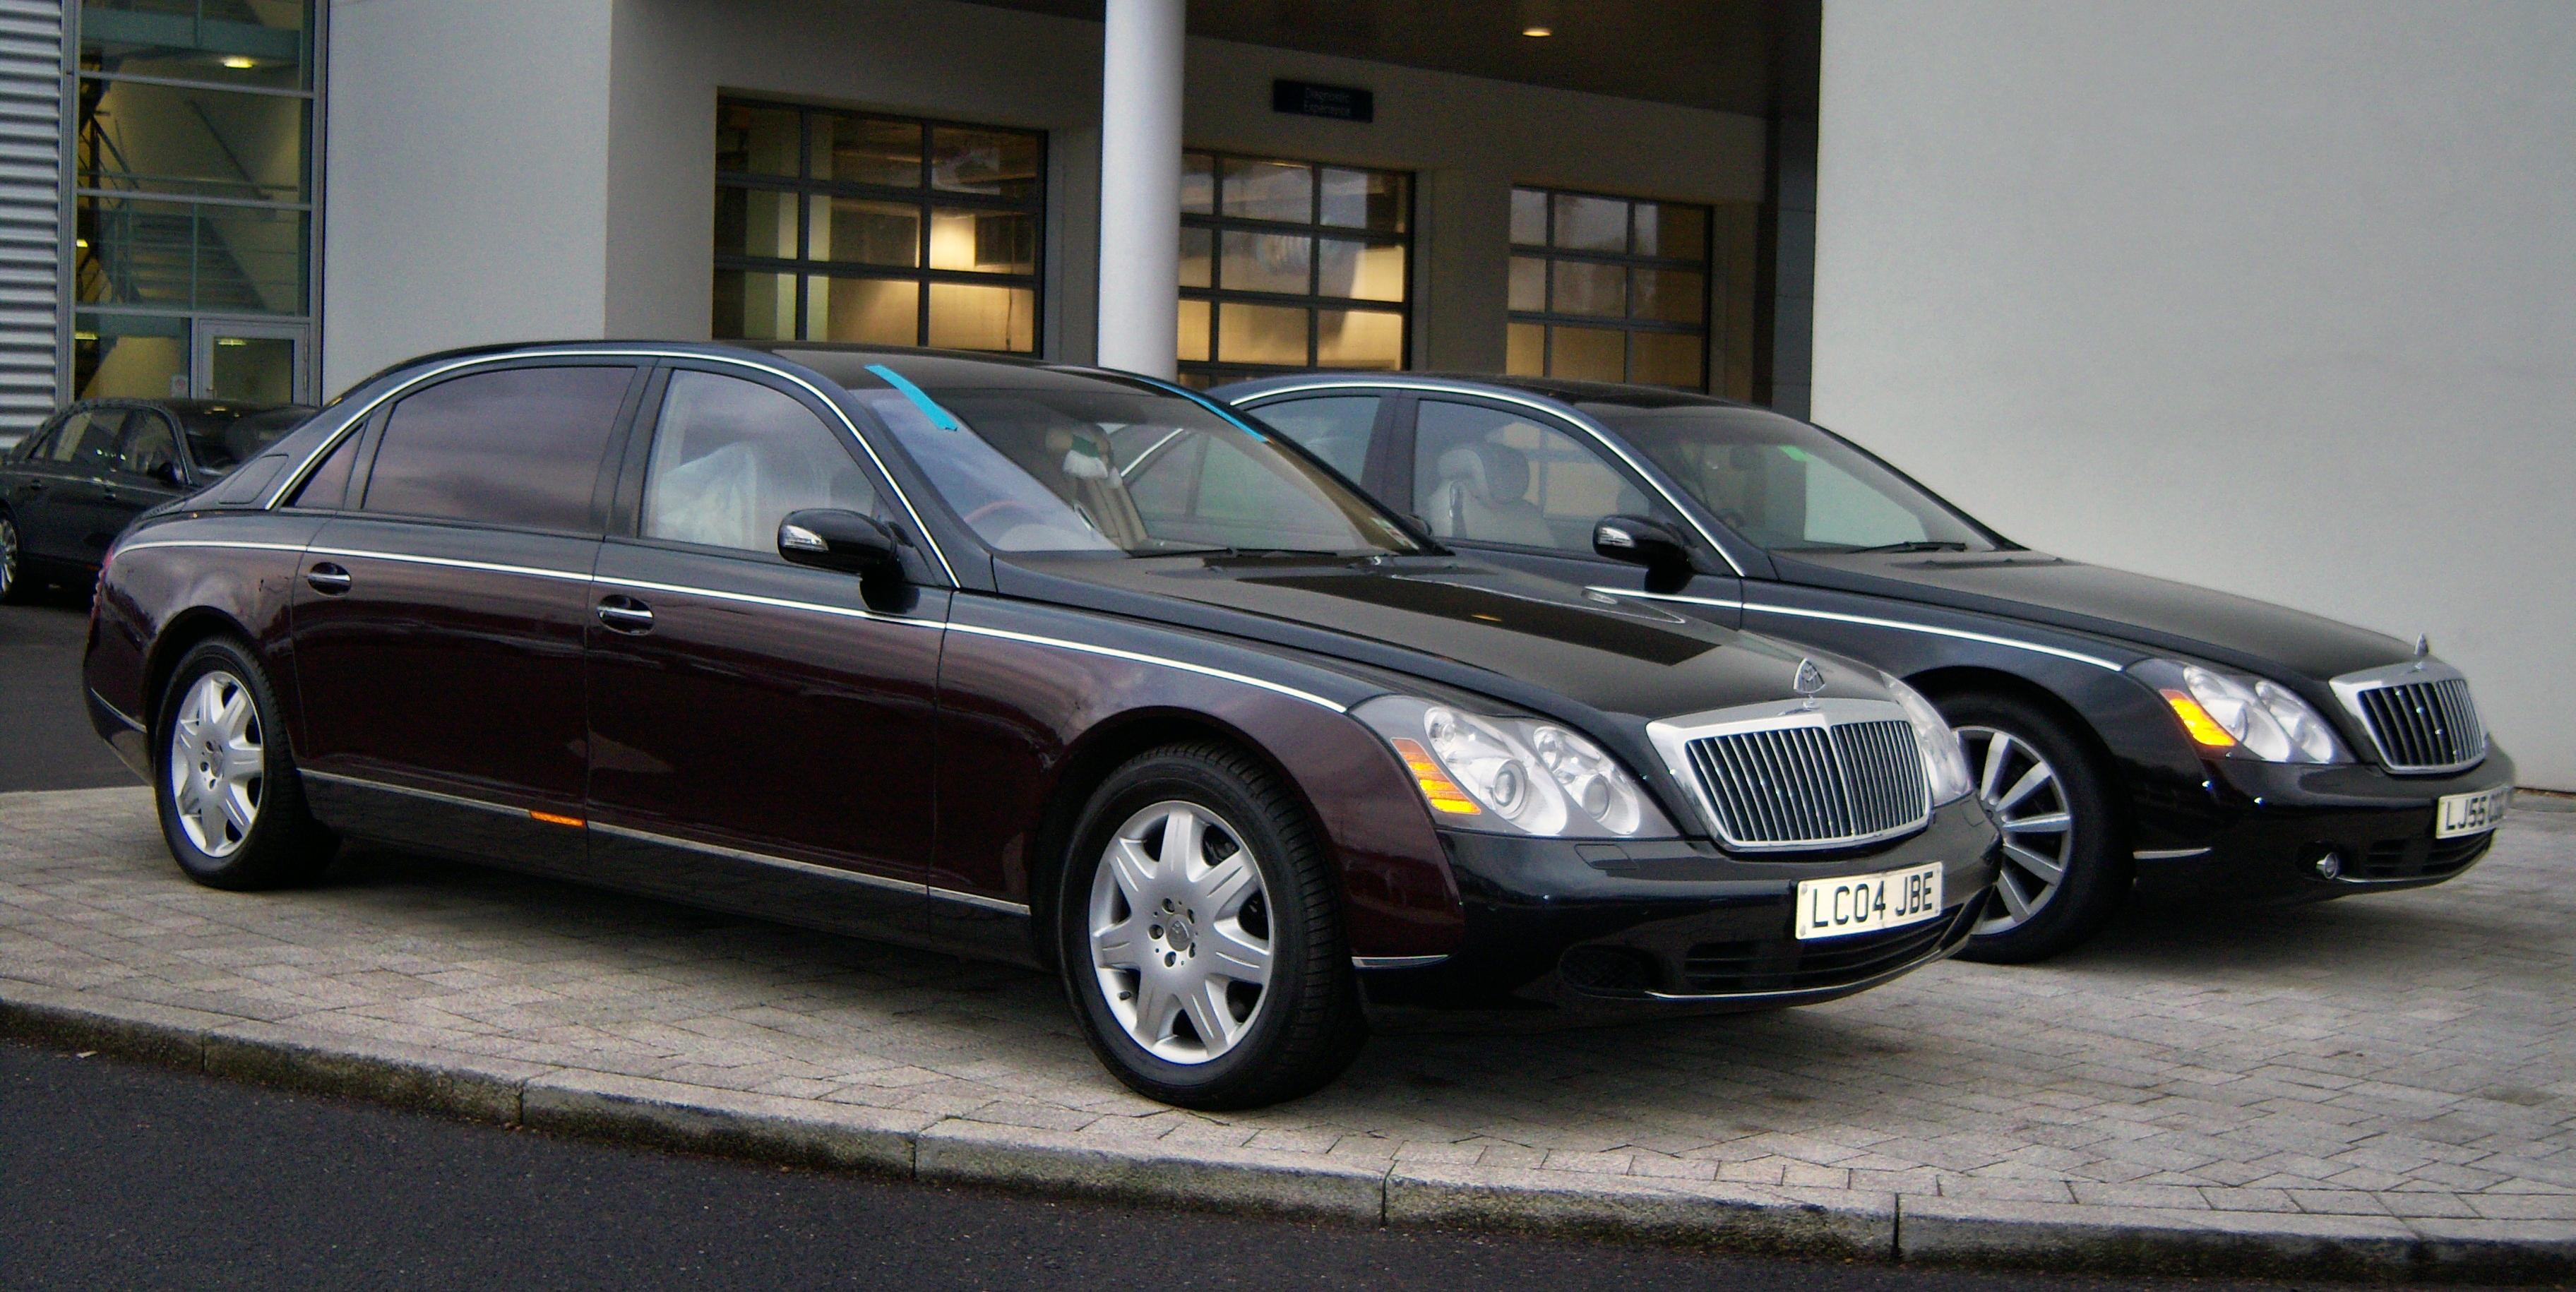 The maybach connection w140 to w240 mercedes benz forum for Mercedes benz forum